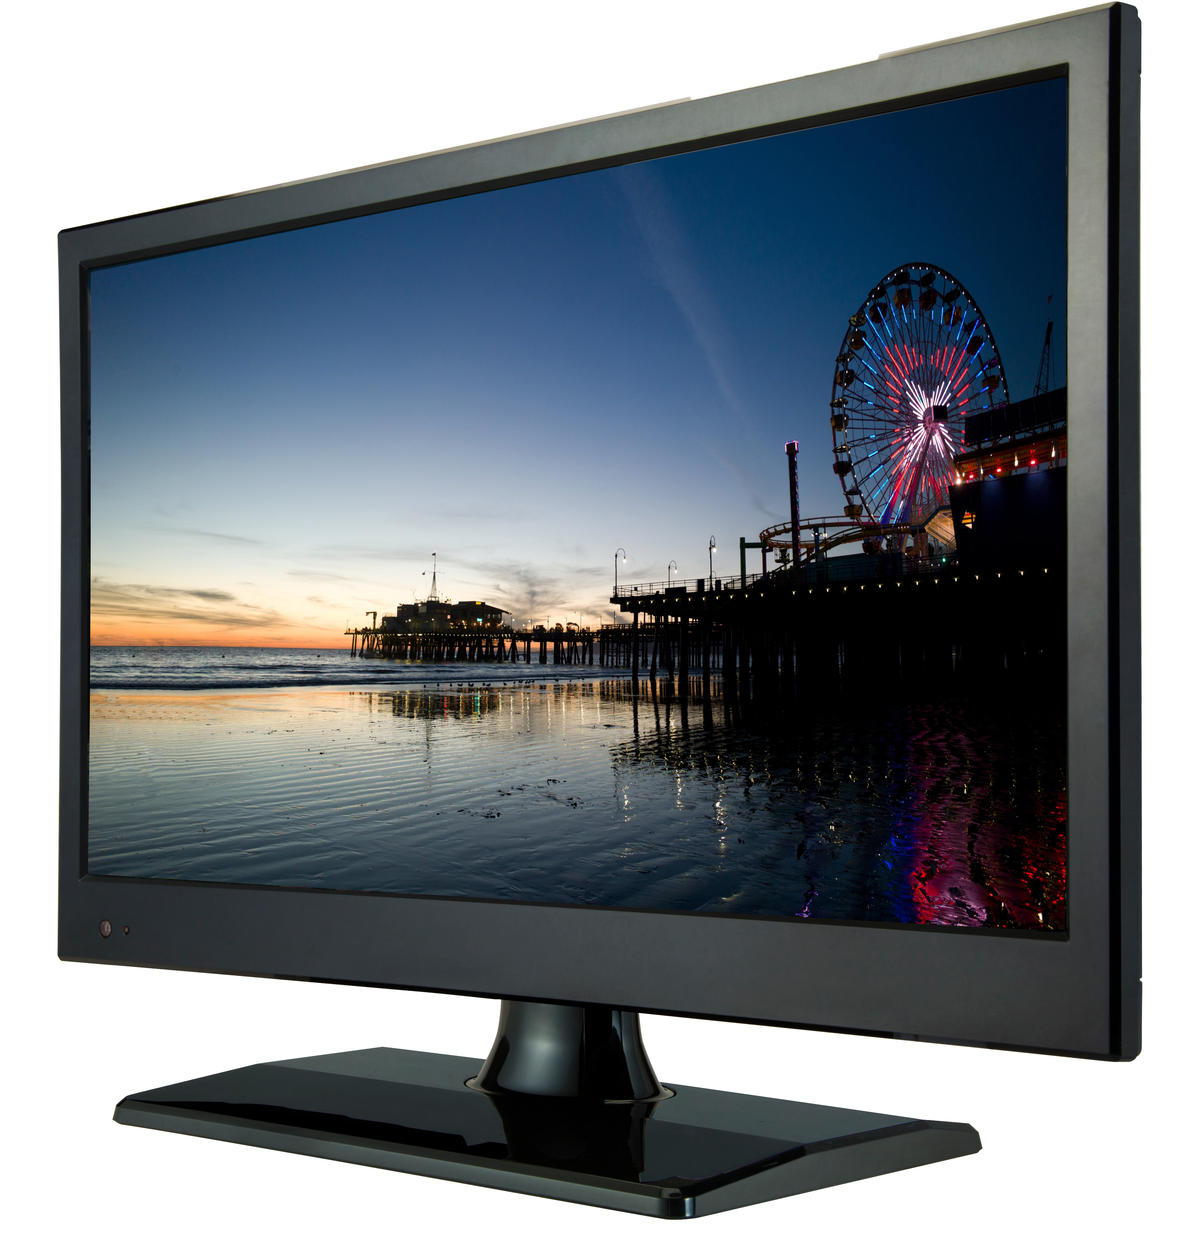 как выглядит Телевизор для дома Blackmore 20 inch TV LED Full HD with HDMI and USB w full function remote фото